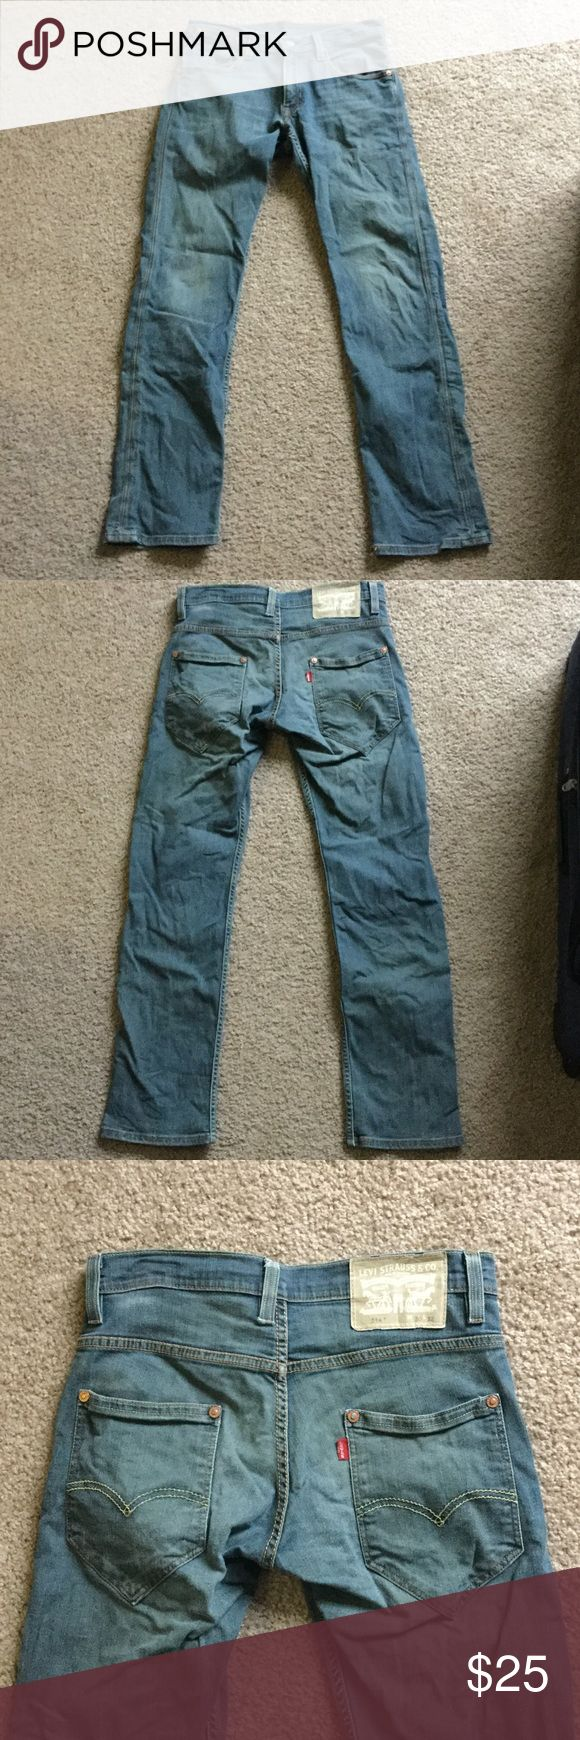 Levi 514 Great pair of men's Levi jeans style 514. Size is 30x32. No rips or stains, naturally distressed. Levi's Jeans Slim Straight